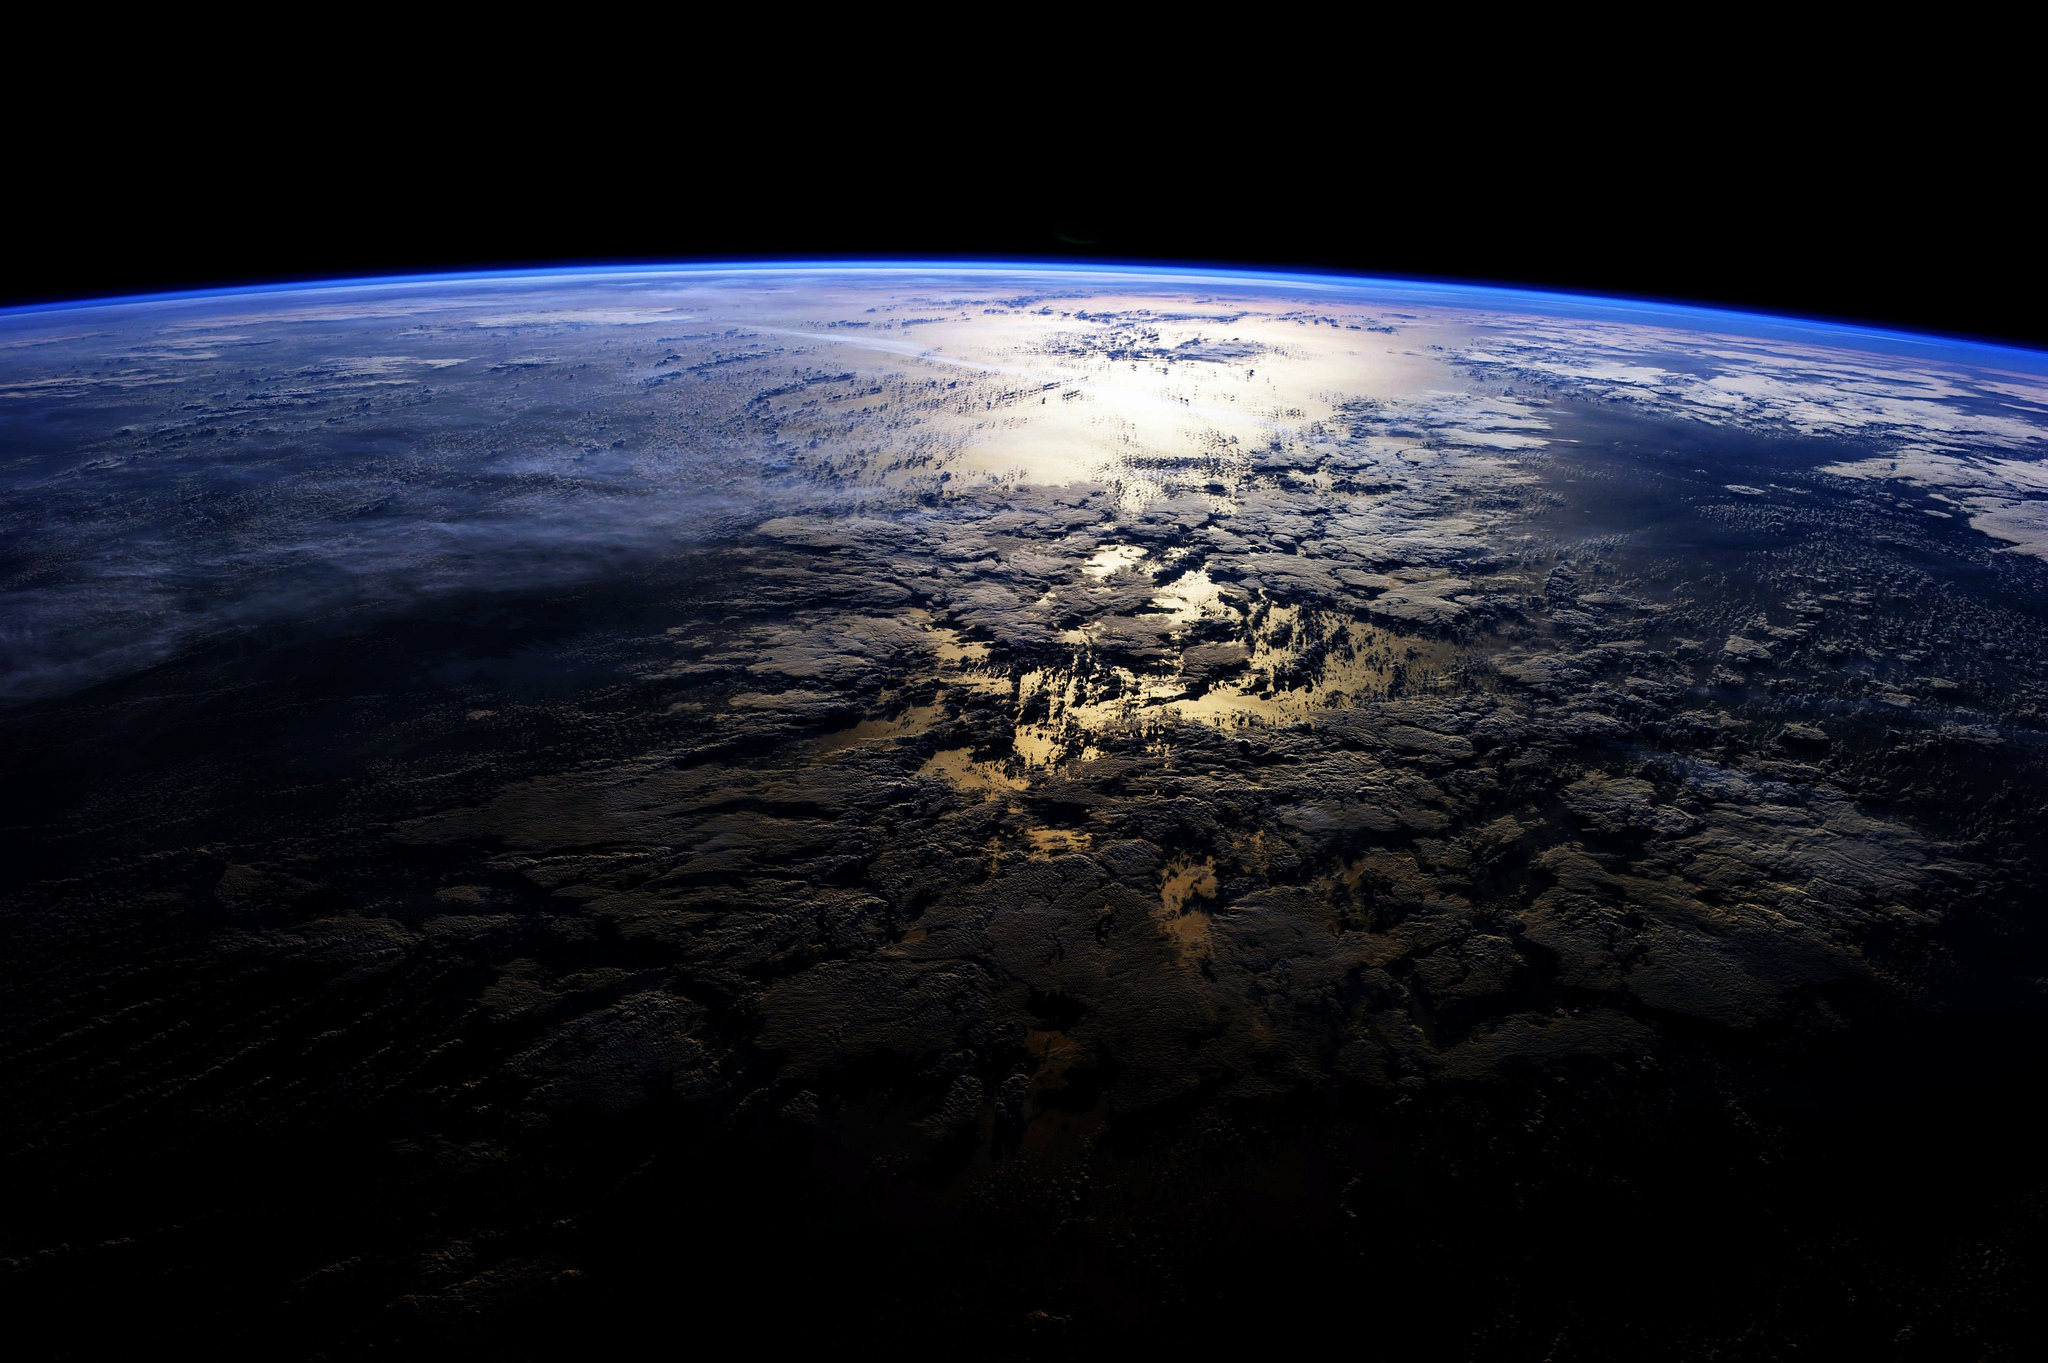 81795 download wallpaper Universe, Dark, Surface, Planet, Islands screensavers and pictures for free